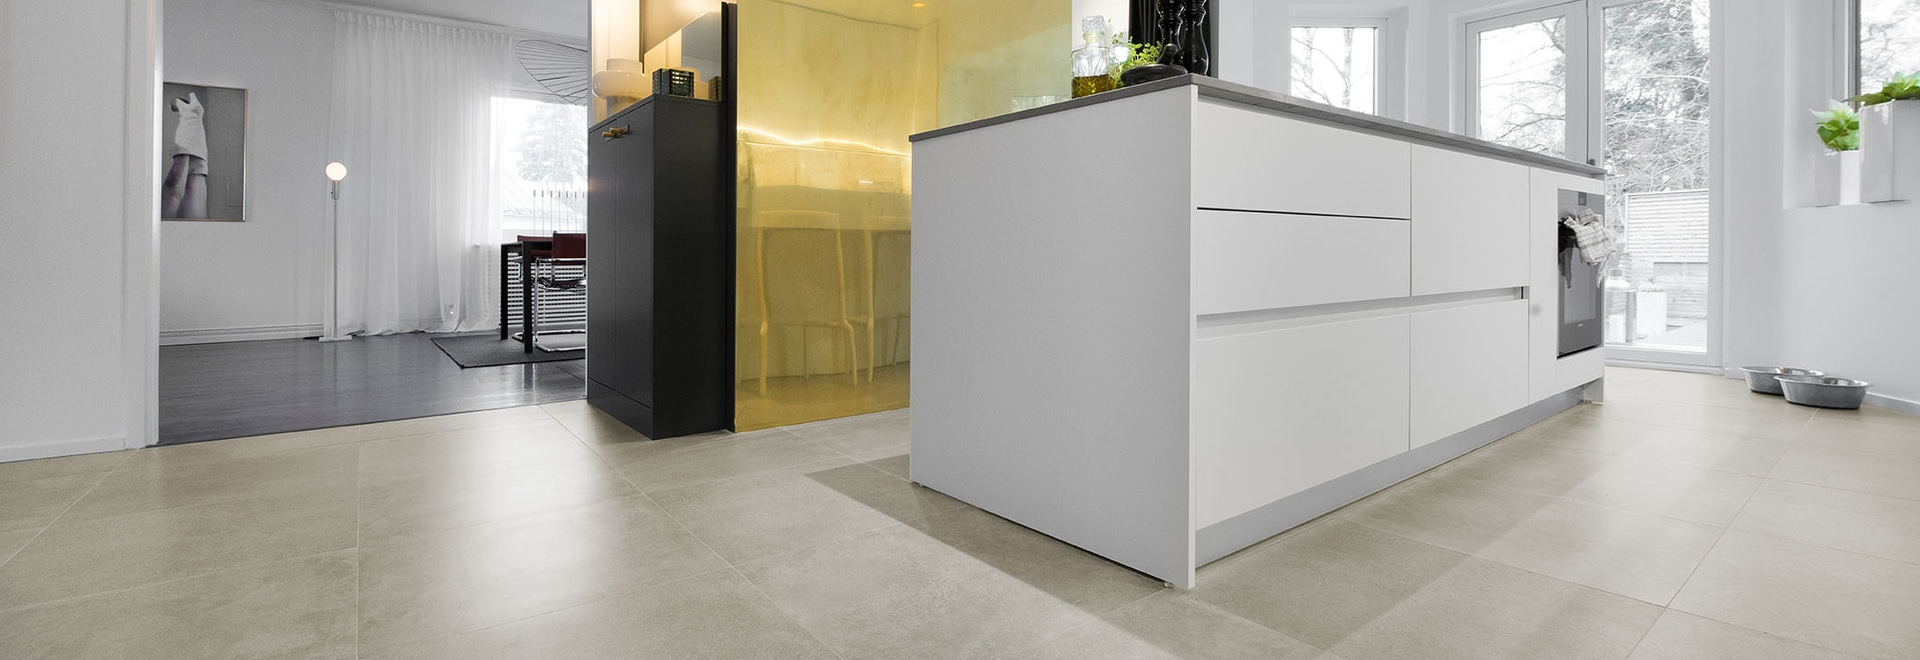 The elegance of Ceramiche Keope porcelain Made in Italy  for a prestigious residential project in Sweden